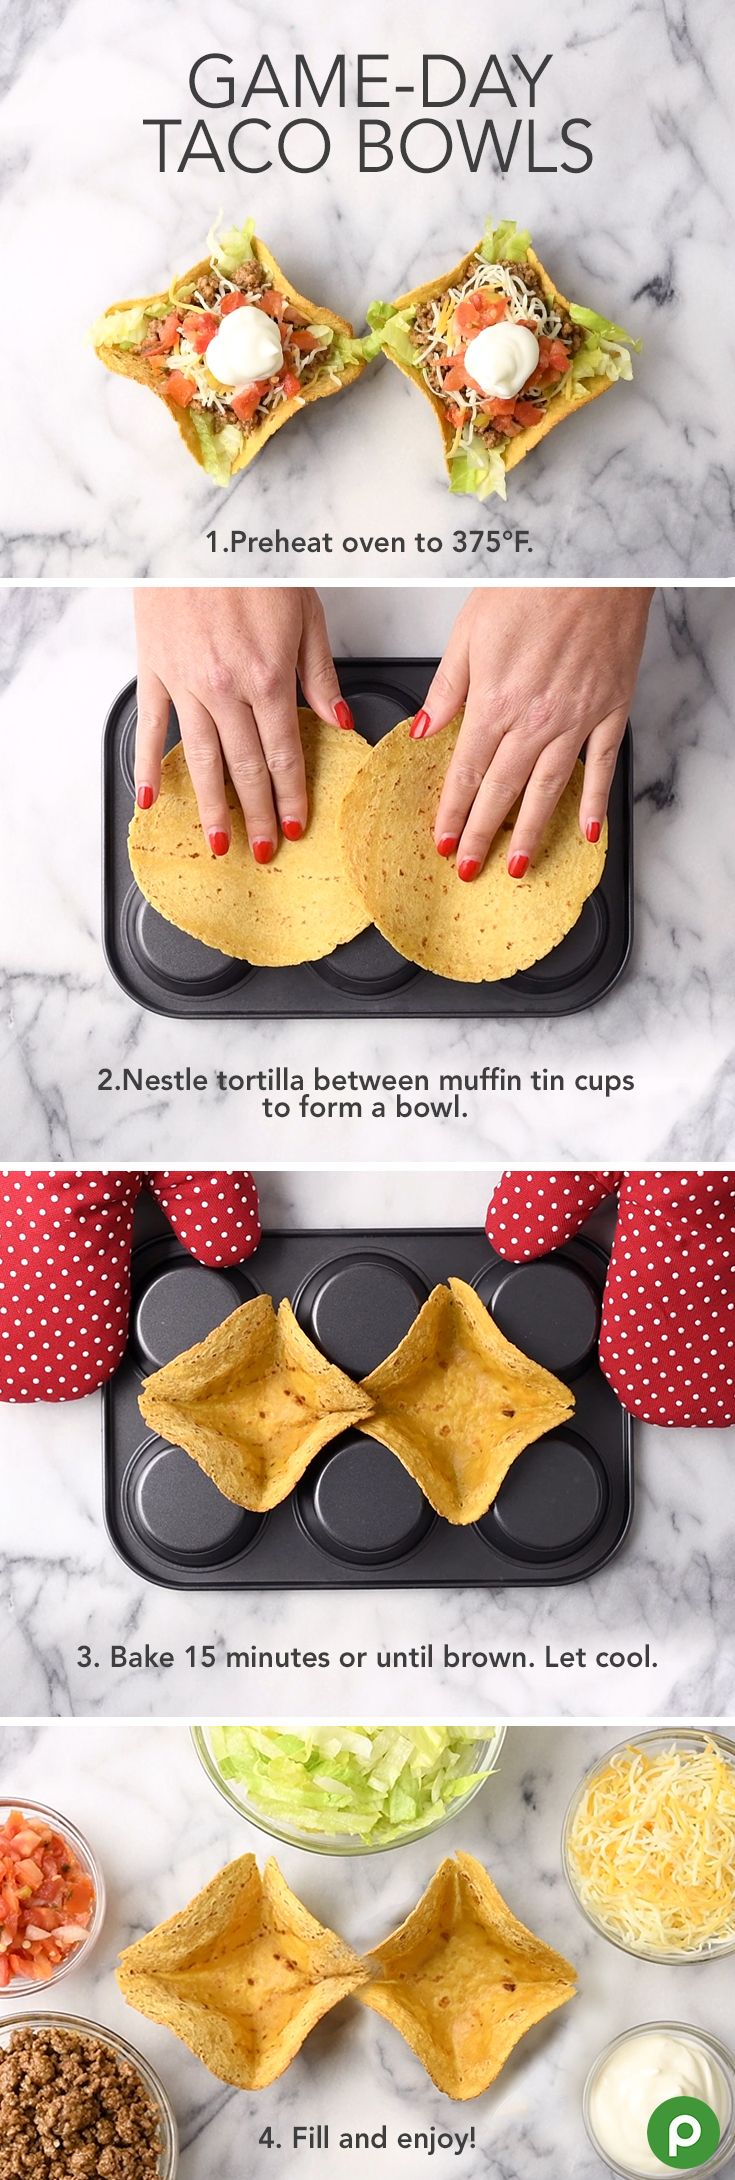 Make a taco bowl using the underside of a muffin tin. Place the corn tortillas on the underside of the muffin tin and heat in the oven for 15 minutes at 375°F. In a large skillet, brown ground beef and add taco seasoning according to package directions. Place corn tortilla bowl on a plate. Fill with desired amount of shredded lettuce. Top with seasoned ground beef mixture and lettuce, cheese, tomatoes, and sour cream. Serve immediately and enjoy!